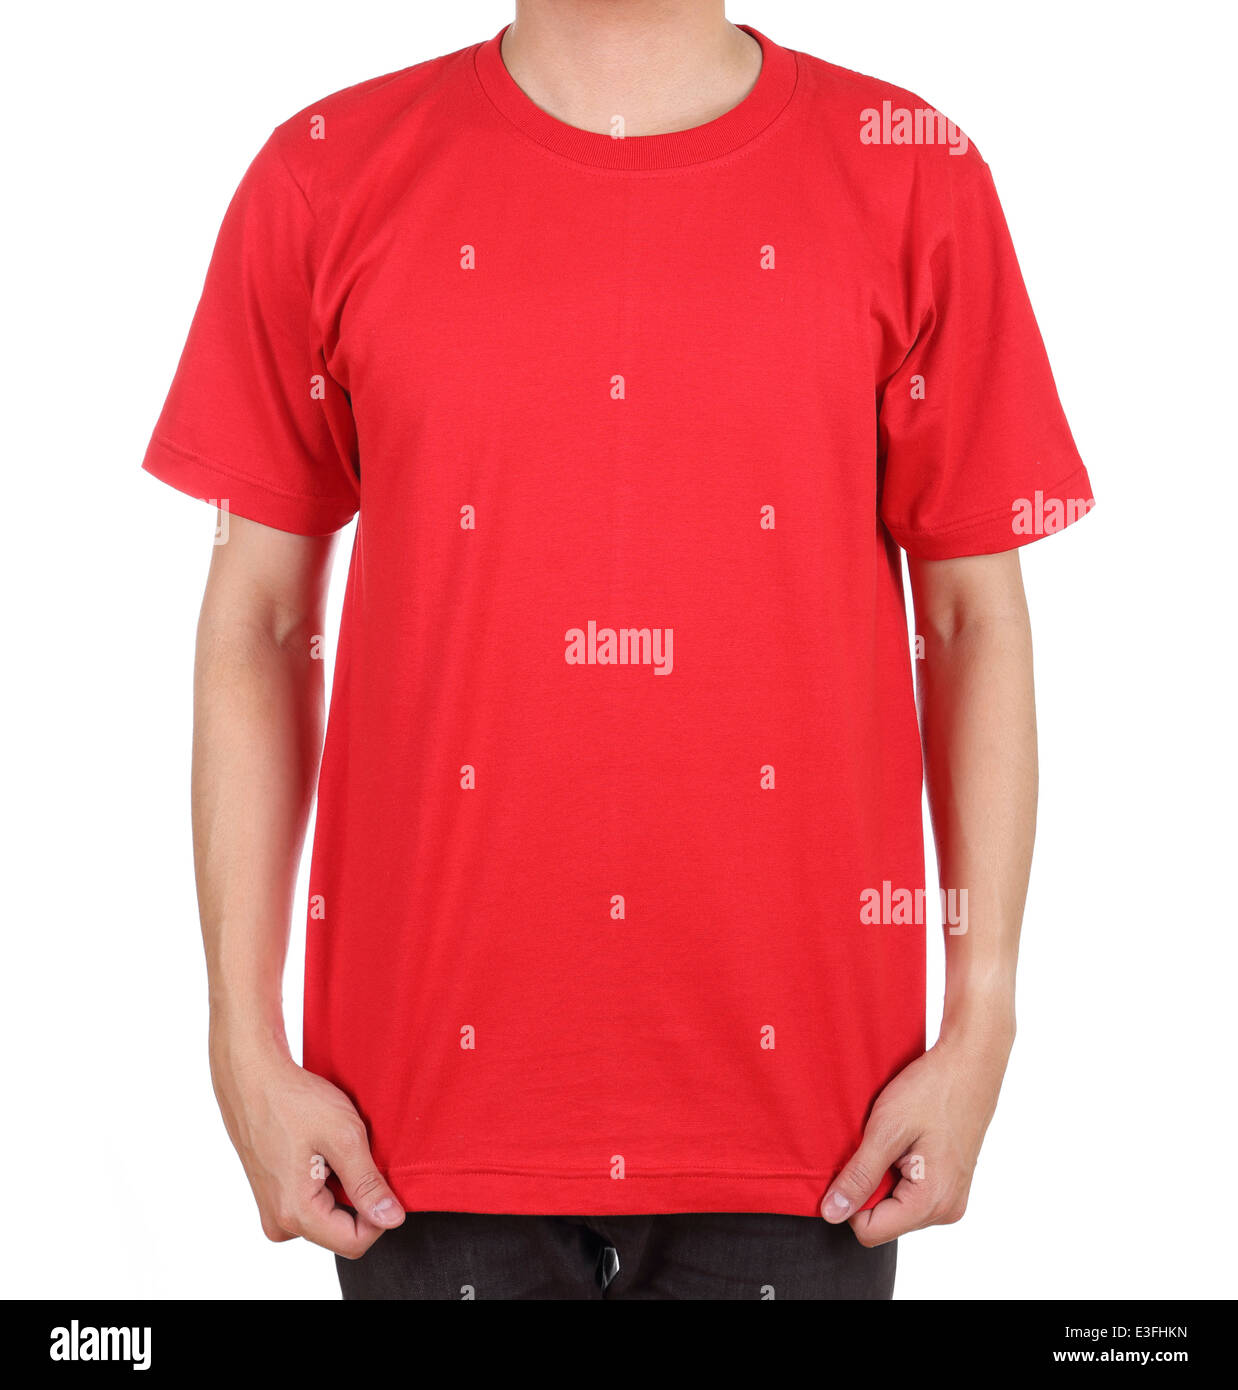 ad0e90da blank red t-shirt on man (front side) isolated on white background ...